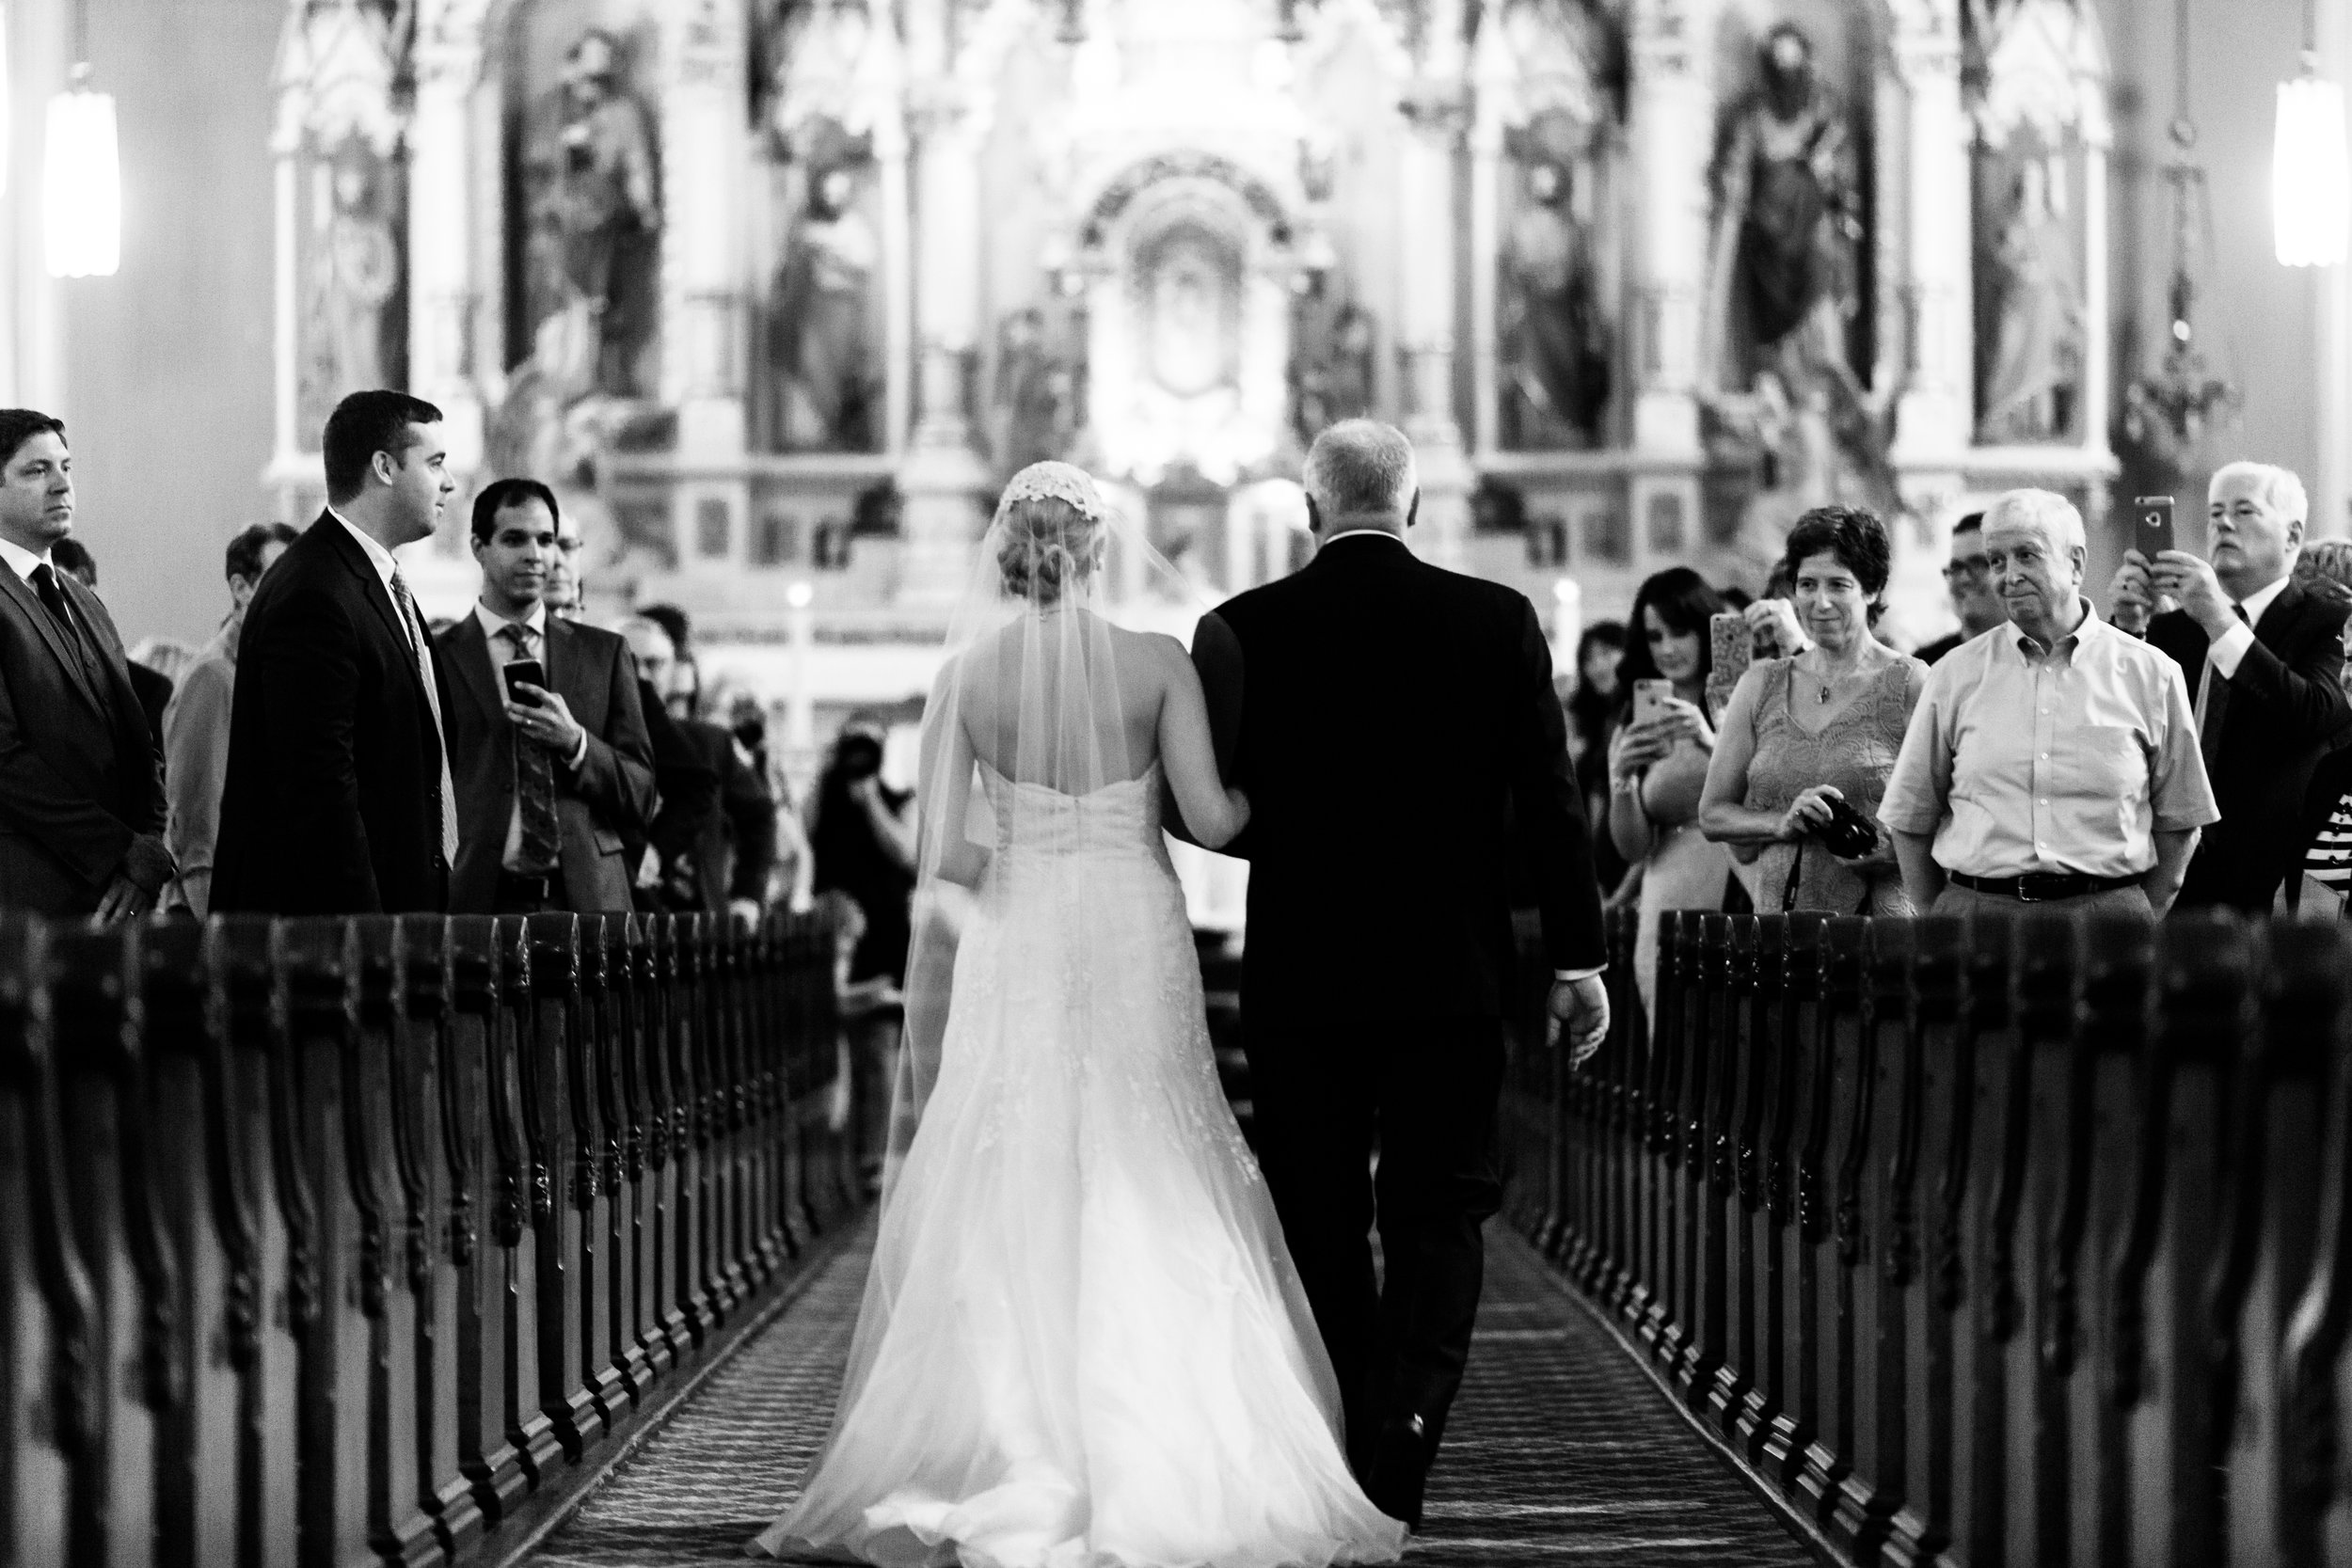 Wedding Ceremony at St. Michael's in Chicago